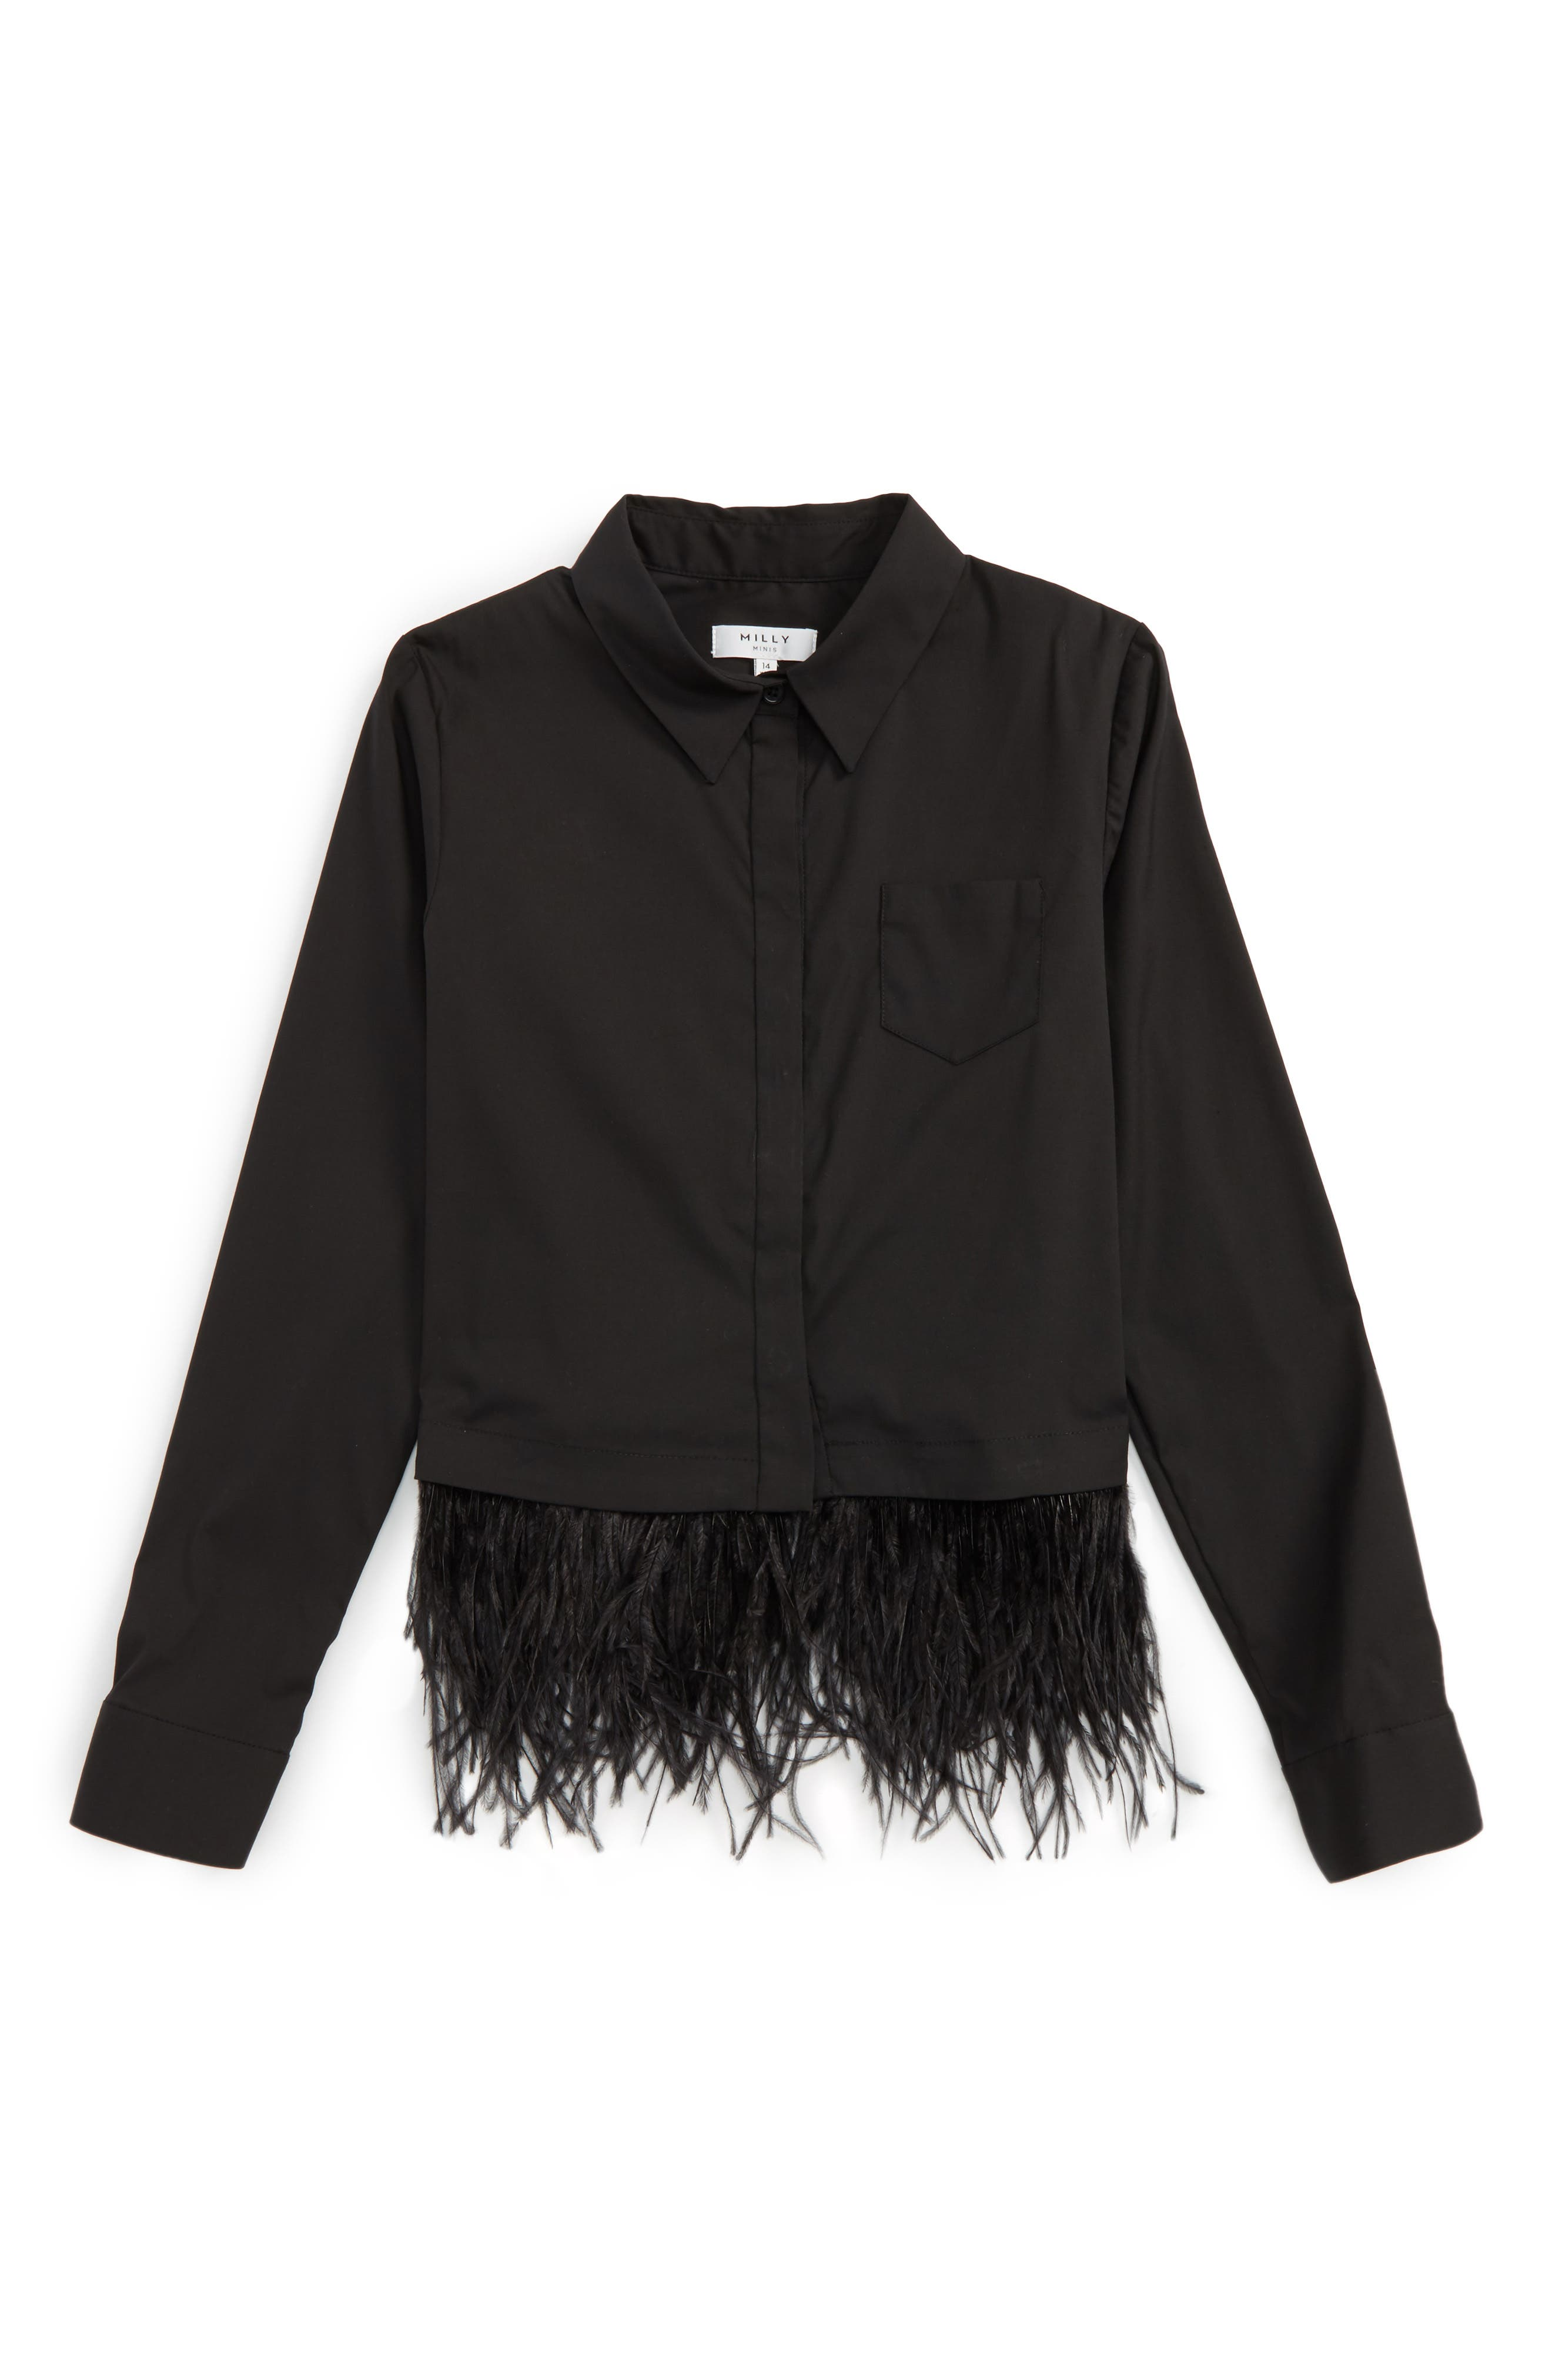 Milly Minis Feather Trim Shirt (Big Girls)